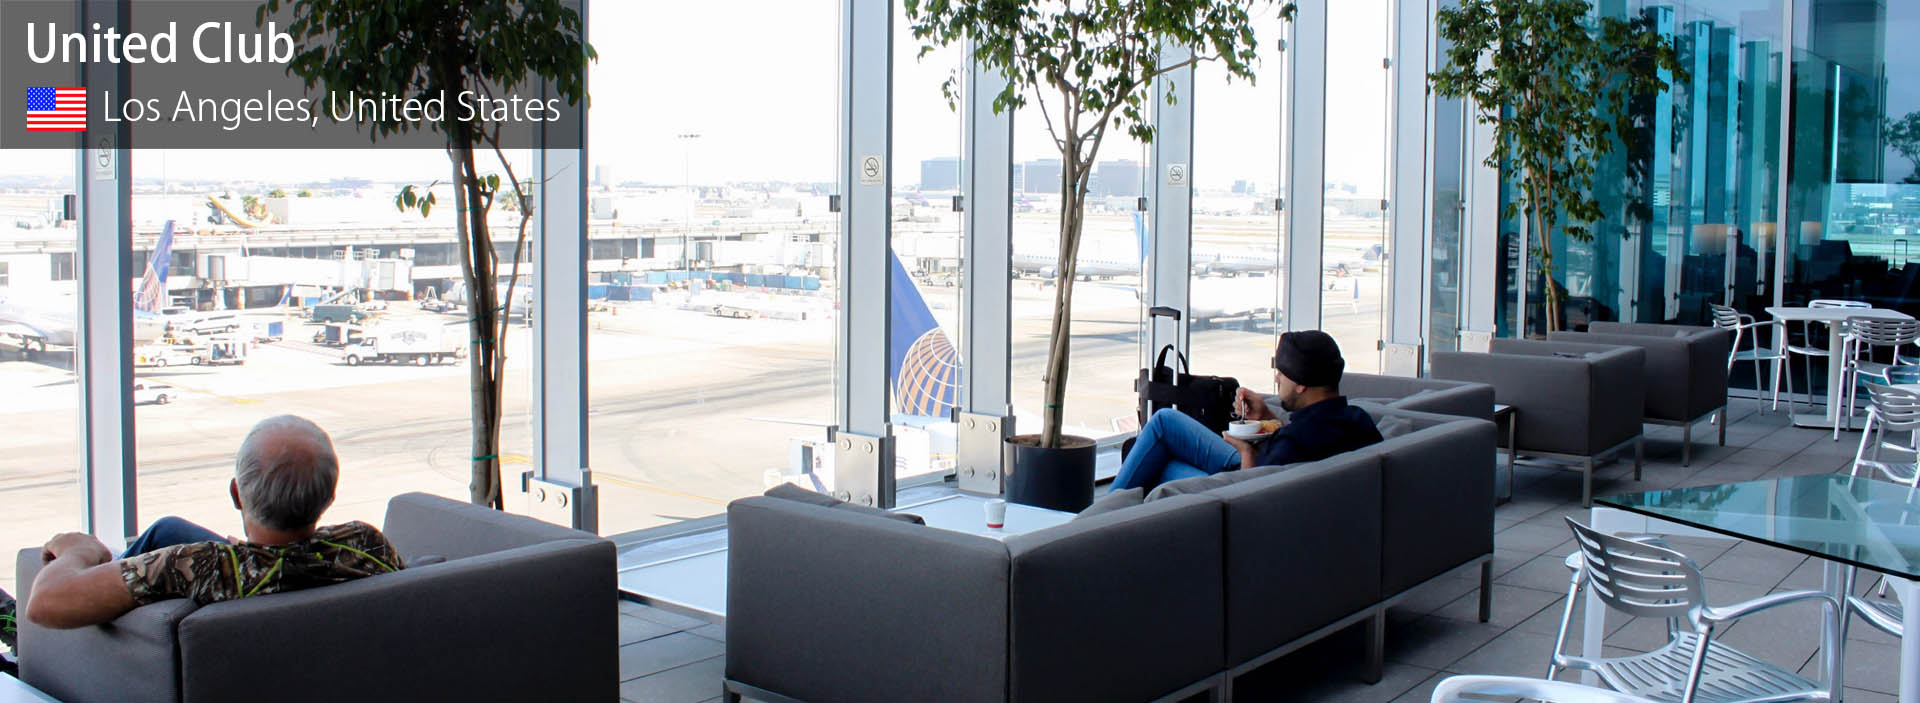 Lounge Review: United Club at Los Angeles International